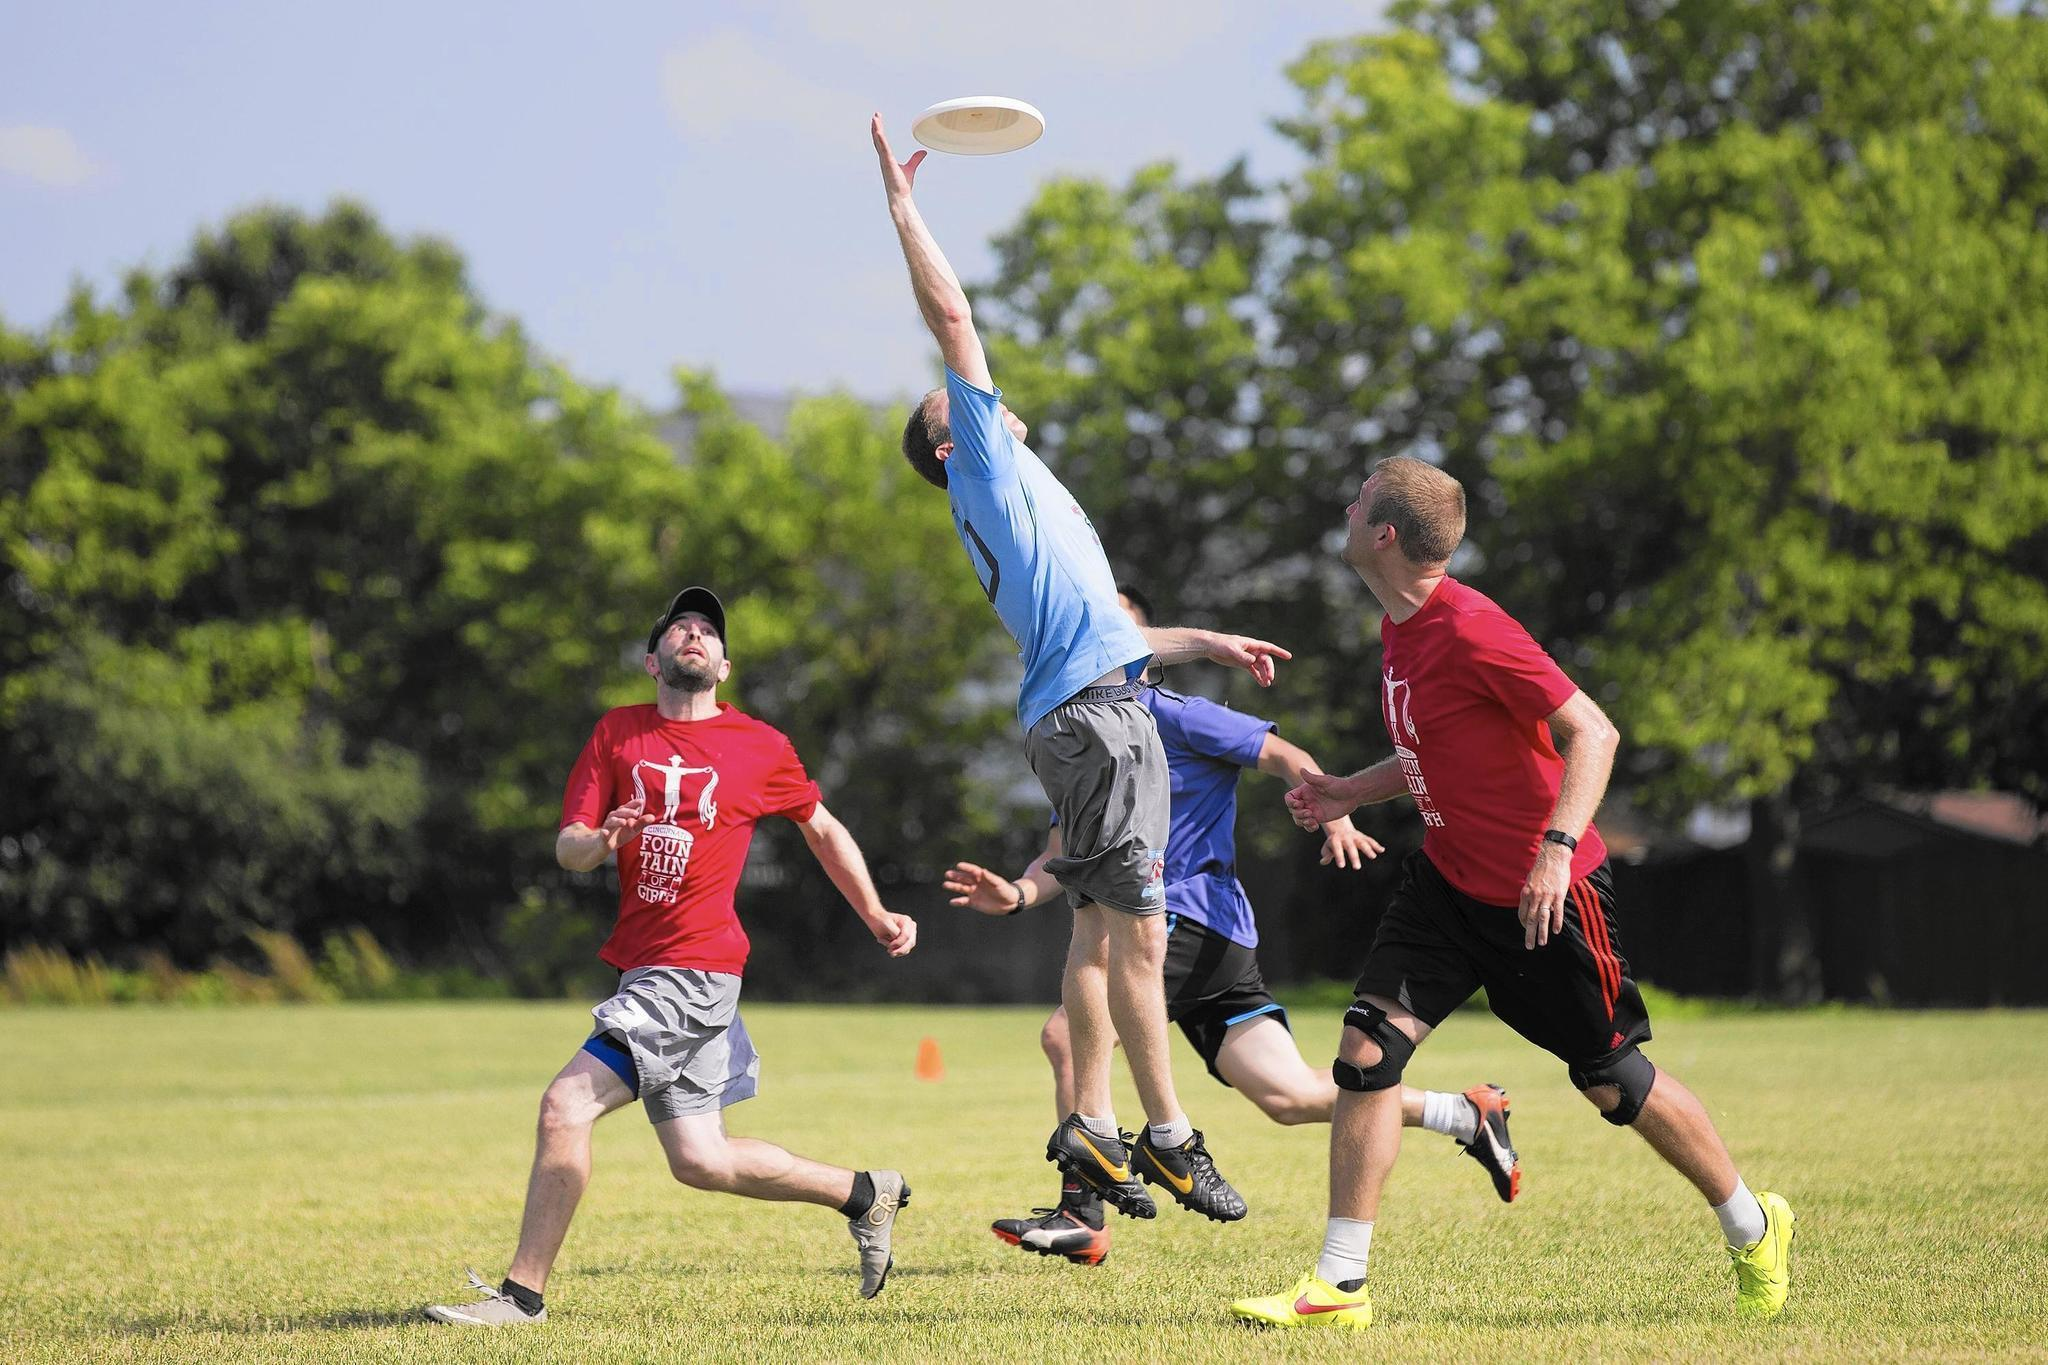 Montgomery To Host Ultimate Frisbee Championship Aurora